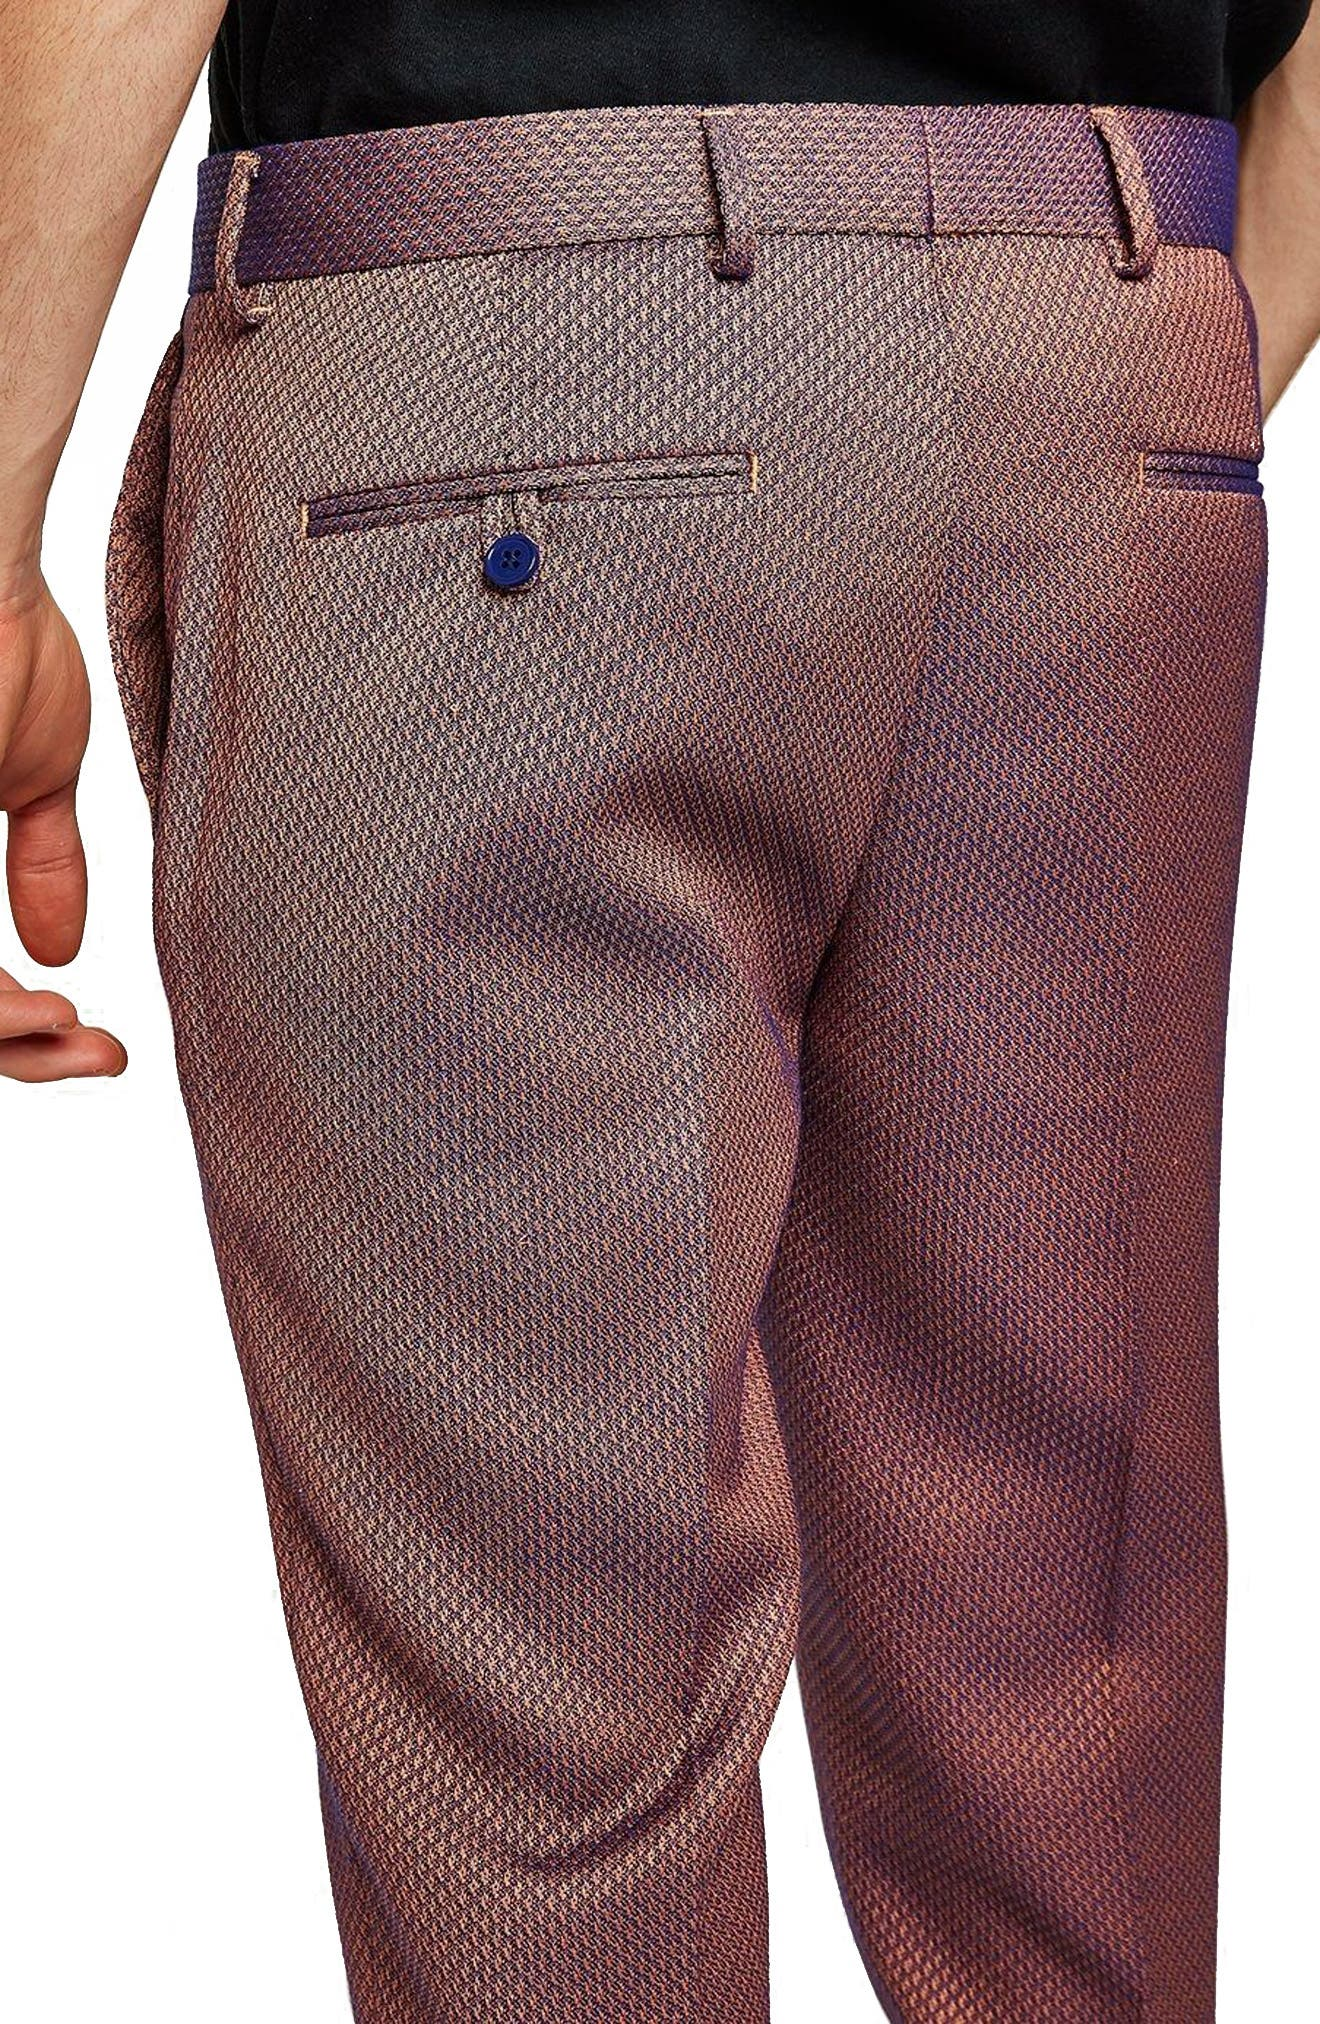 Skinny Fit Jacquard Trousers,                             Alternate thumbnail 2, color,                             RED